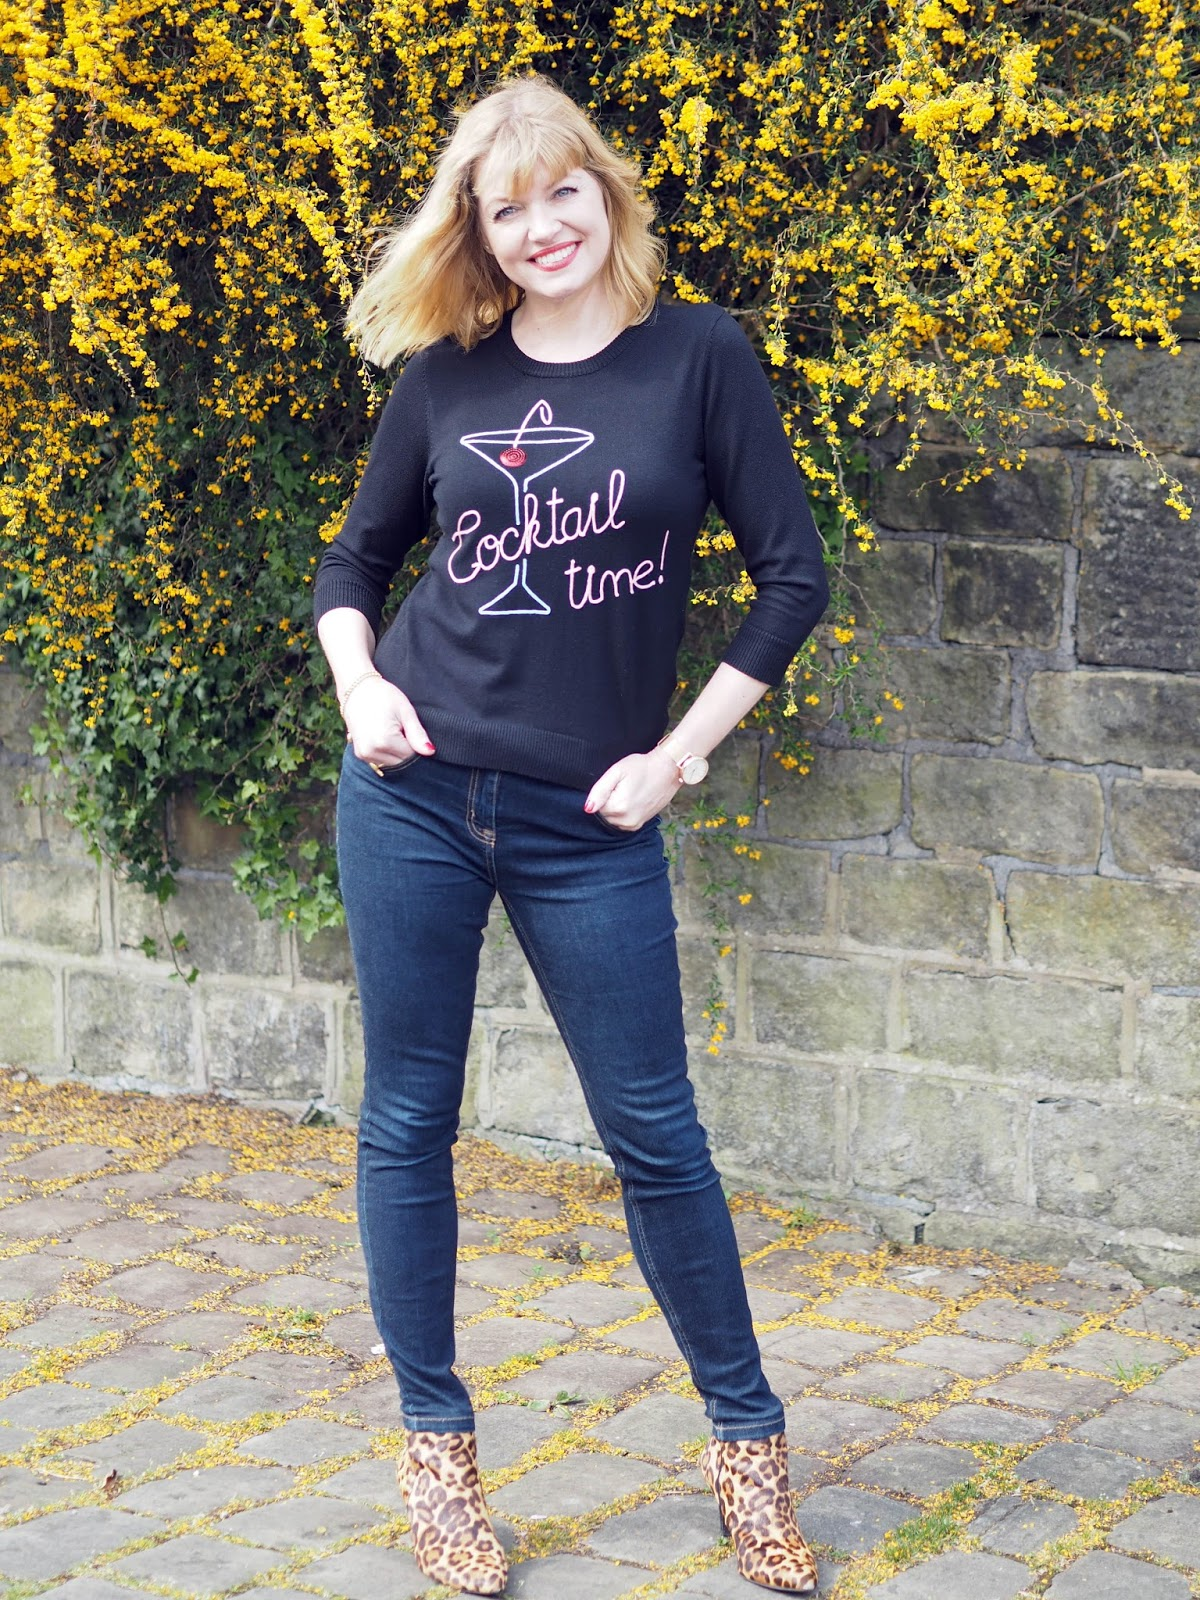 40 plus style blogger What Lizzy Loves wears What Lizzy Loves. Cocktail glass logo top worn with skinny jeans and high-heeled leopard print boots